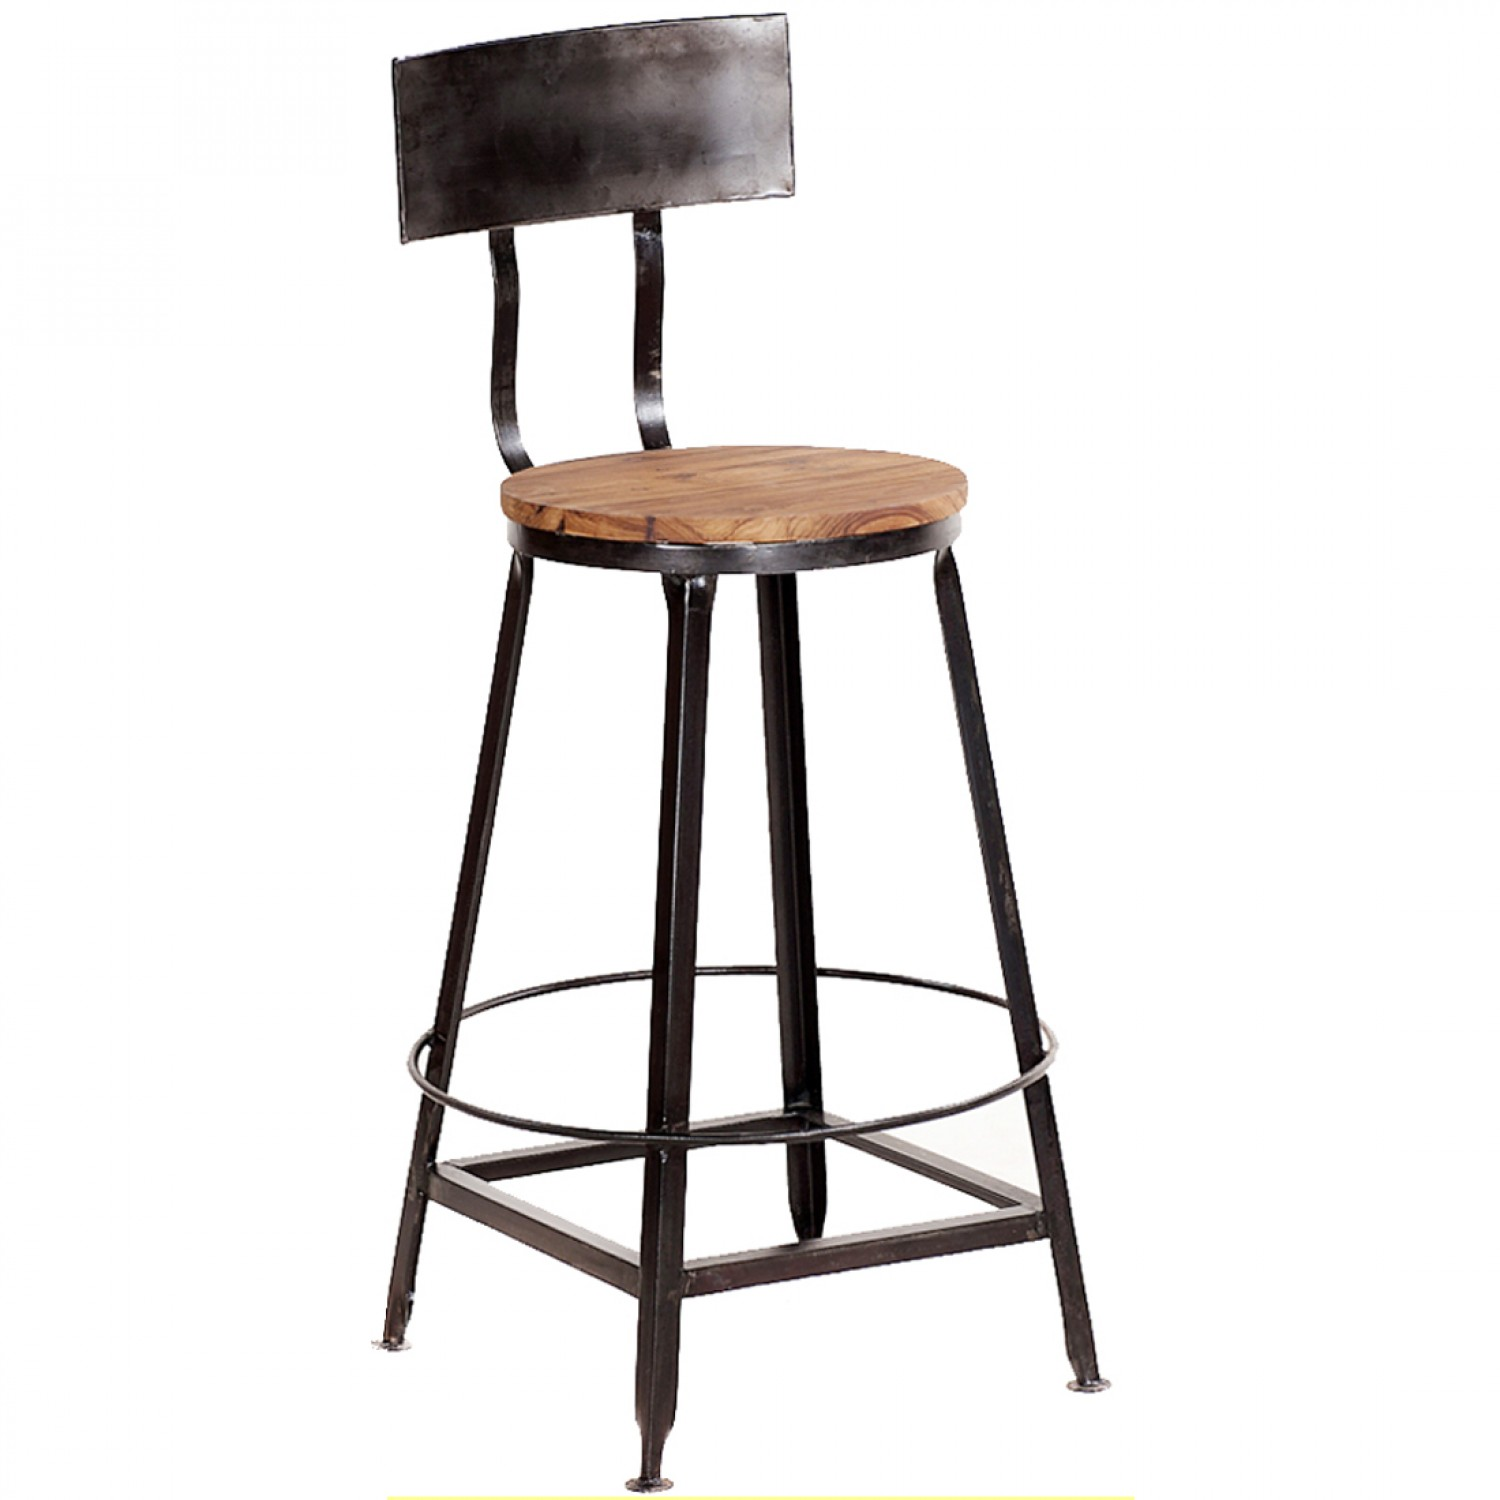 Amazing Vintage Metal Bar Stools HomesFeed : Vintage Metal Bar Stools With Back from homesfeed.com size 1500 x 1500 jpeg 128kB